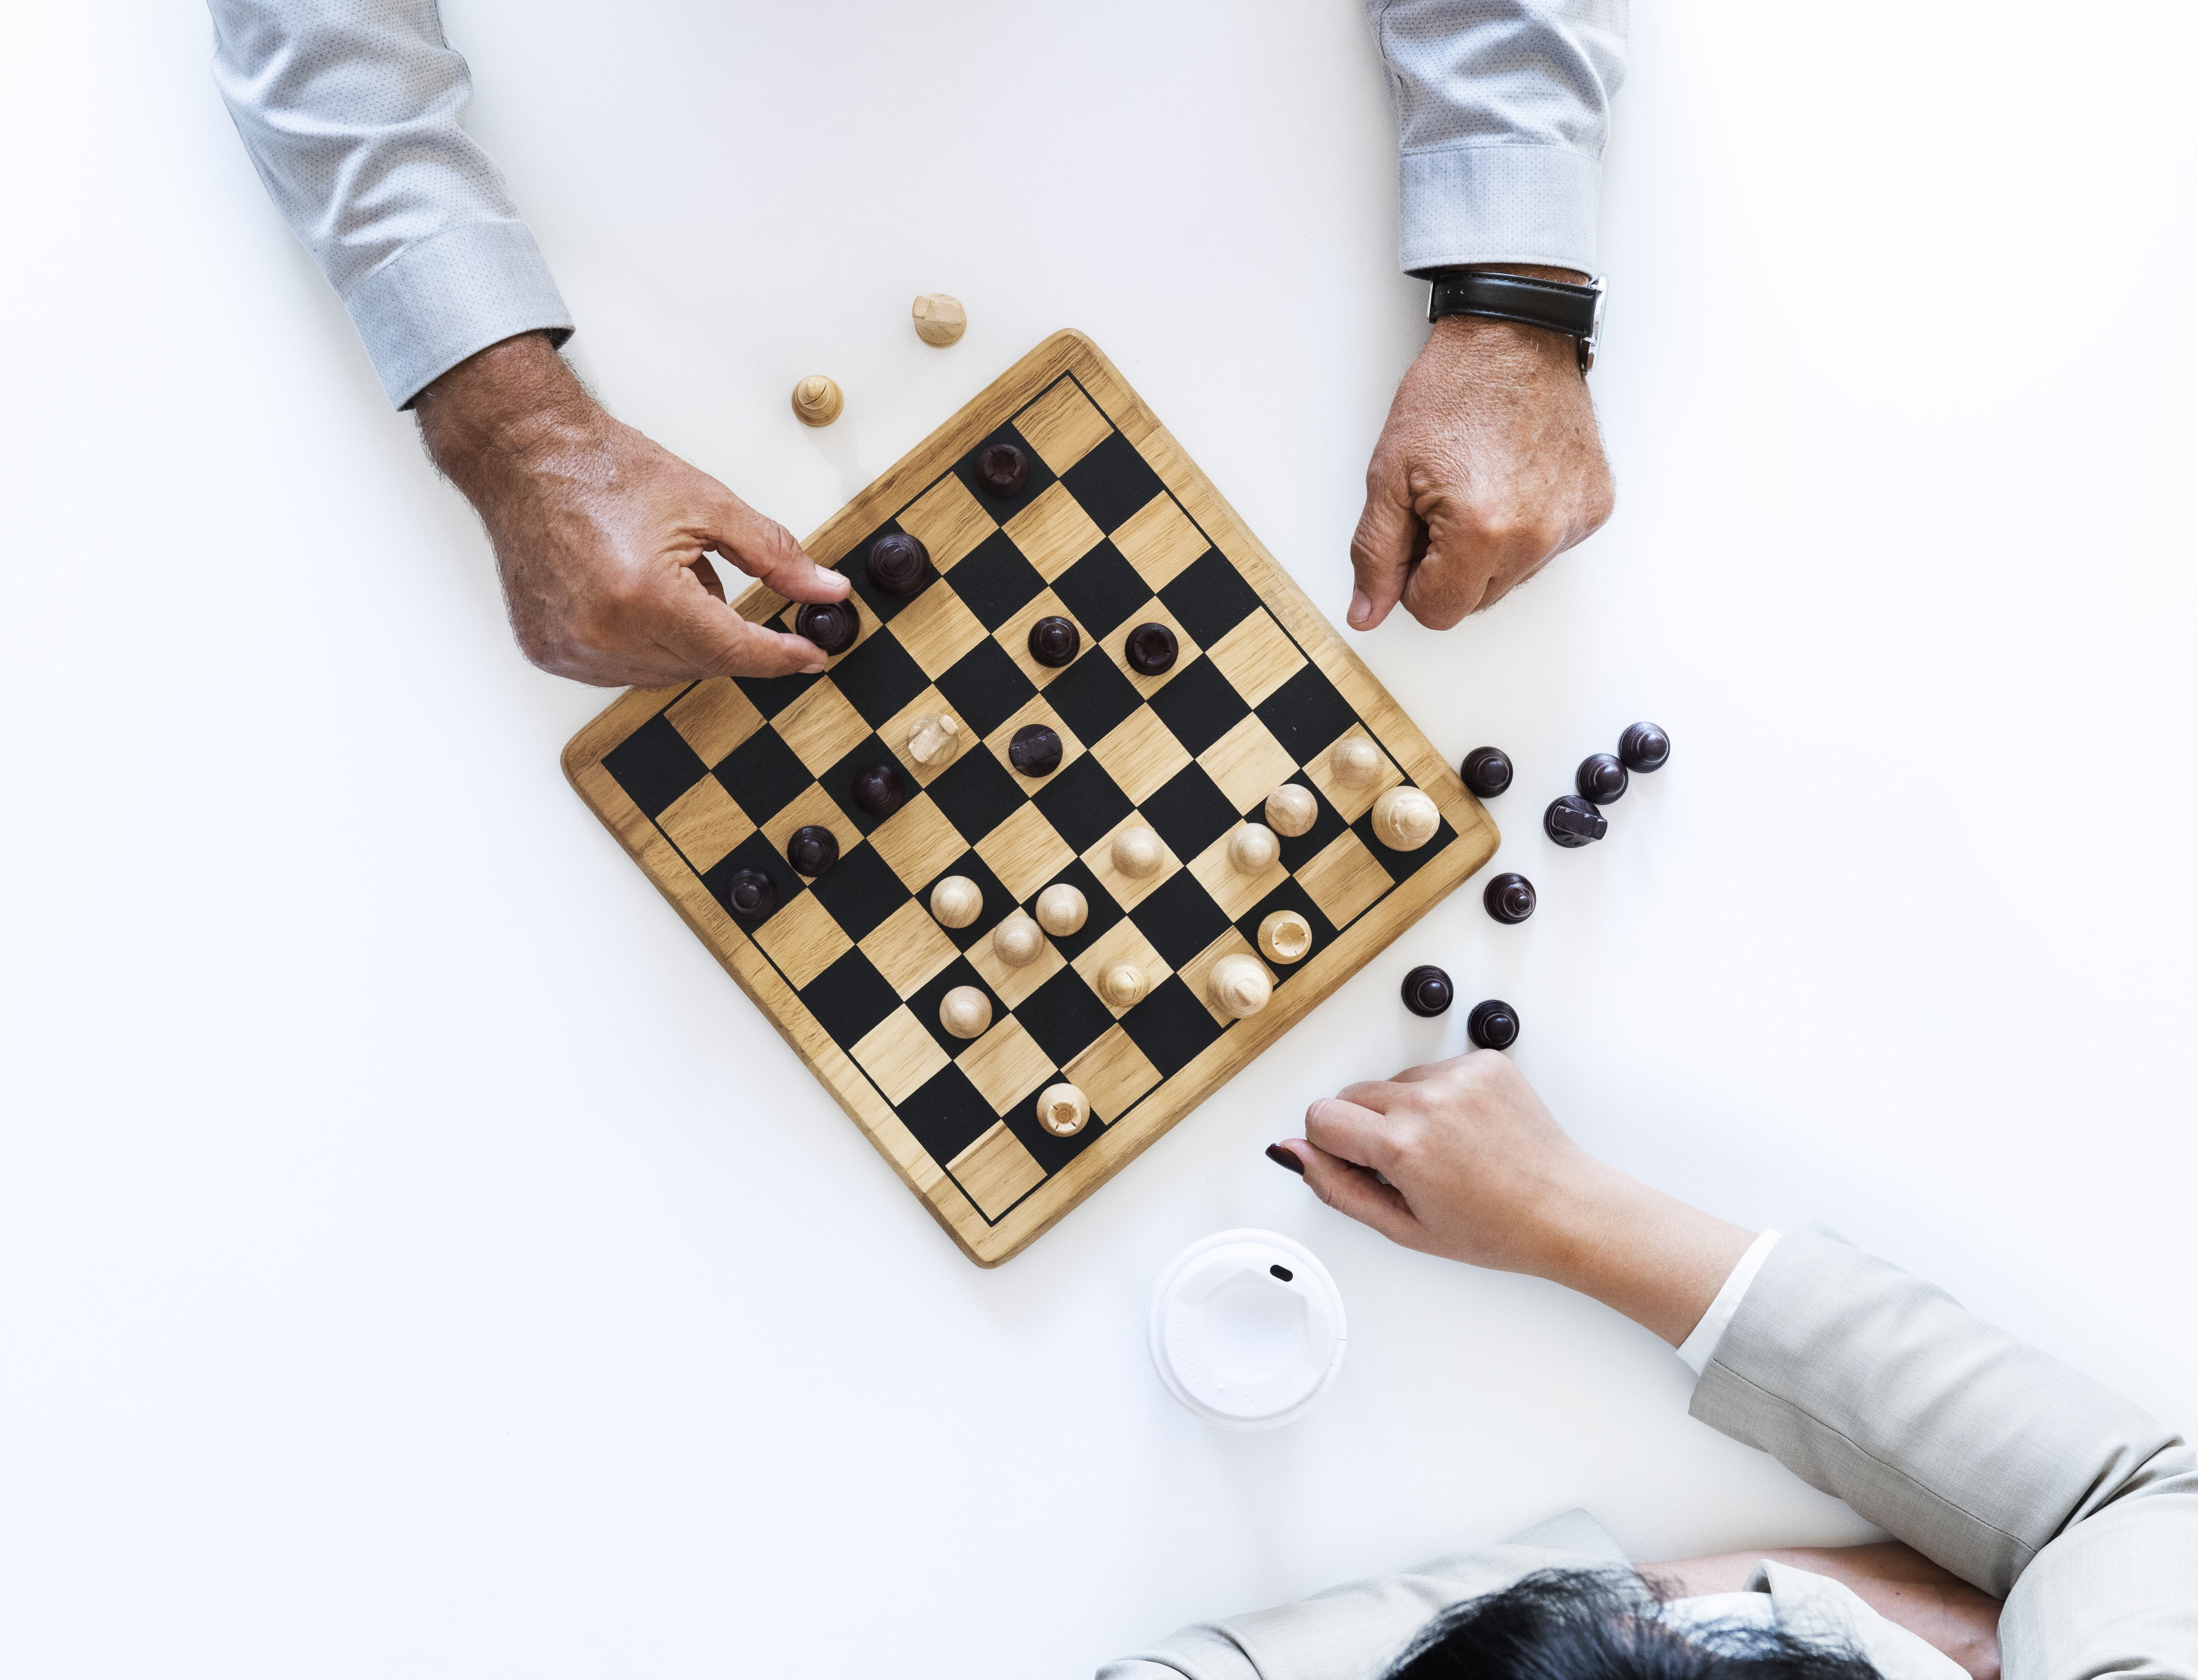 person showing playing chess game